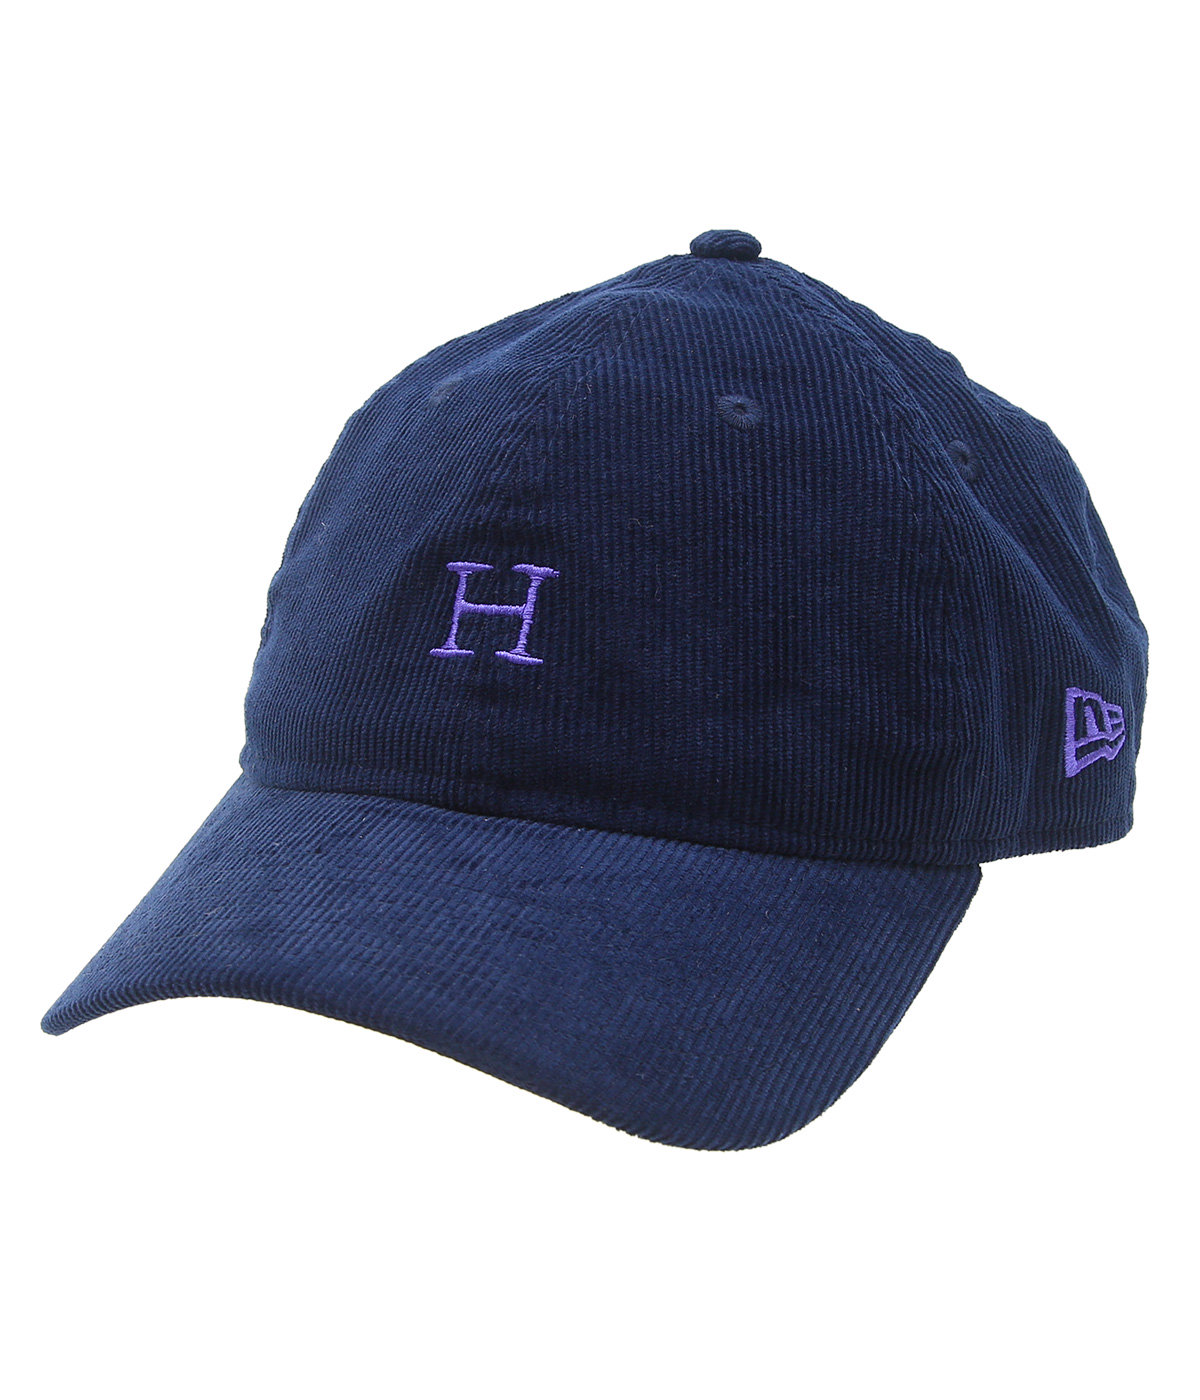 NEW ERA HRM SUMMER CORDUROY H EMBROIDERY CAP